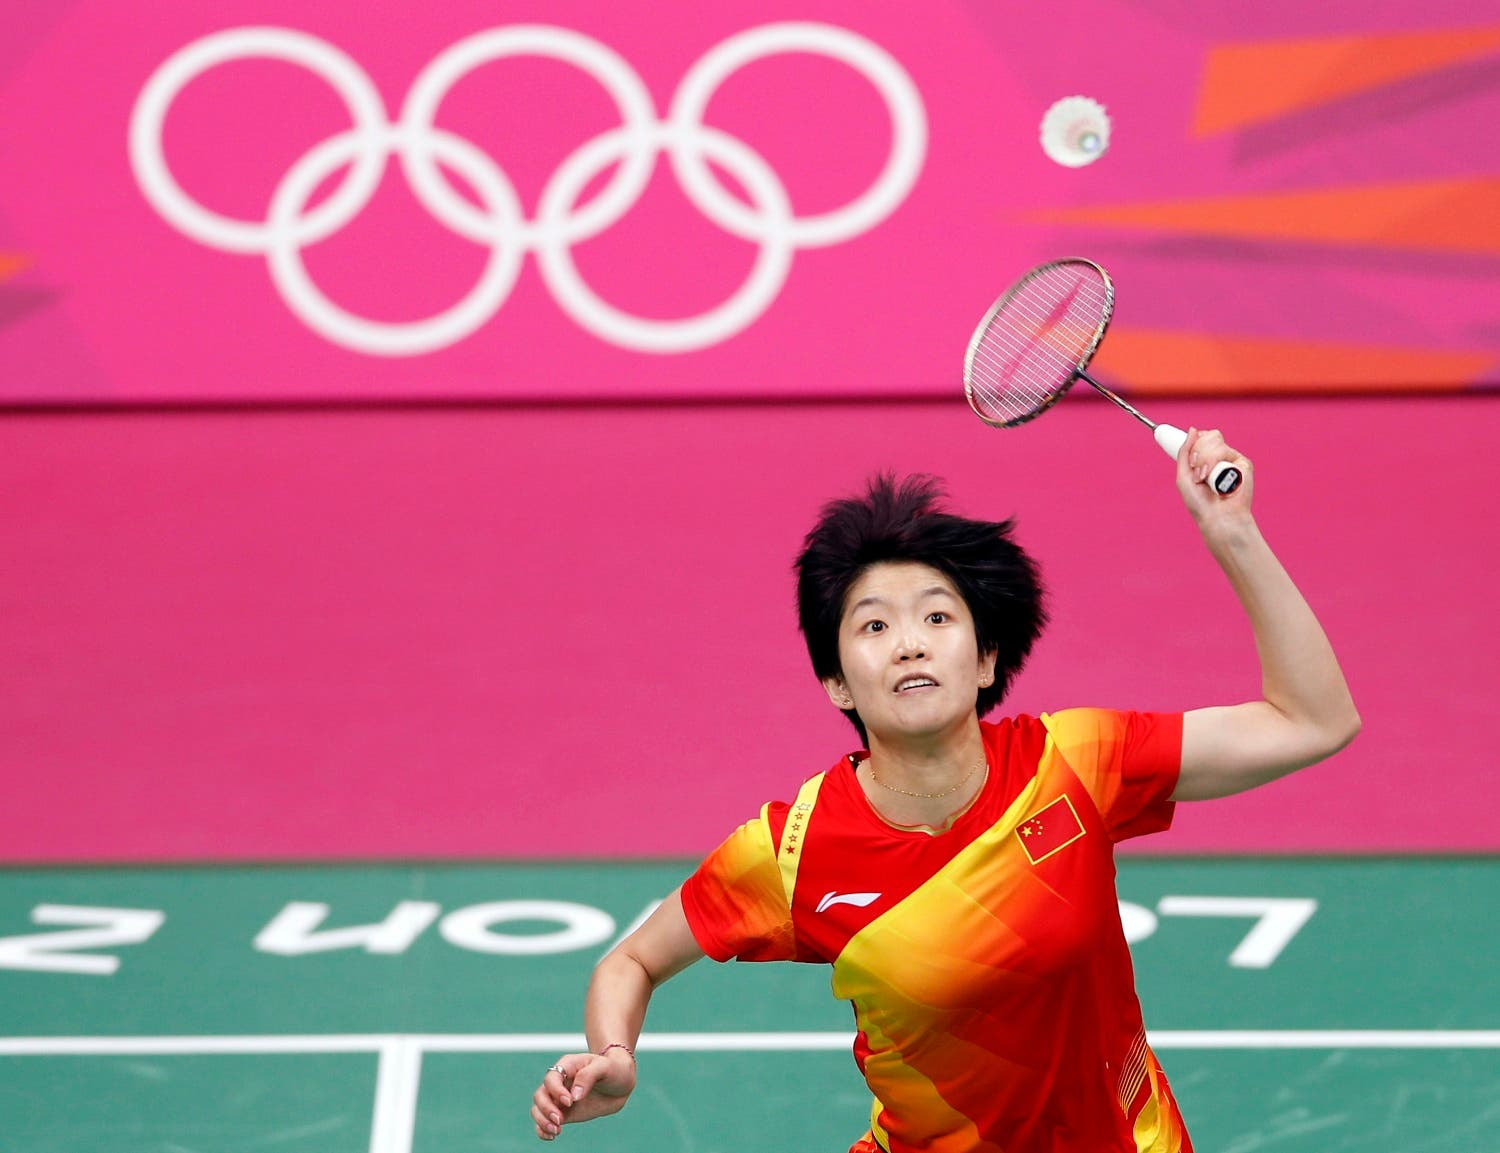 China's Wang Xin returns a shot to India's Saina Nehwal during their women's singles badminton bronze medal match at the London 2012 Olympic Games at the Wembley Arena August 4, 2012. (Reuters)